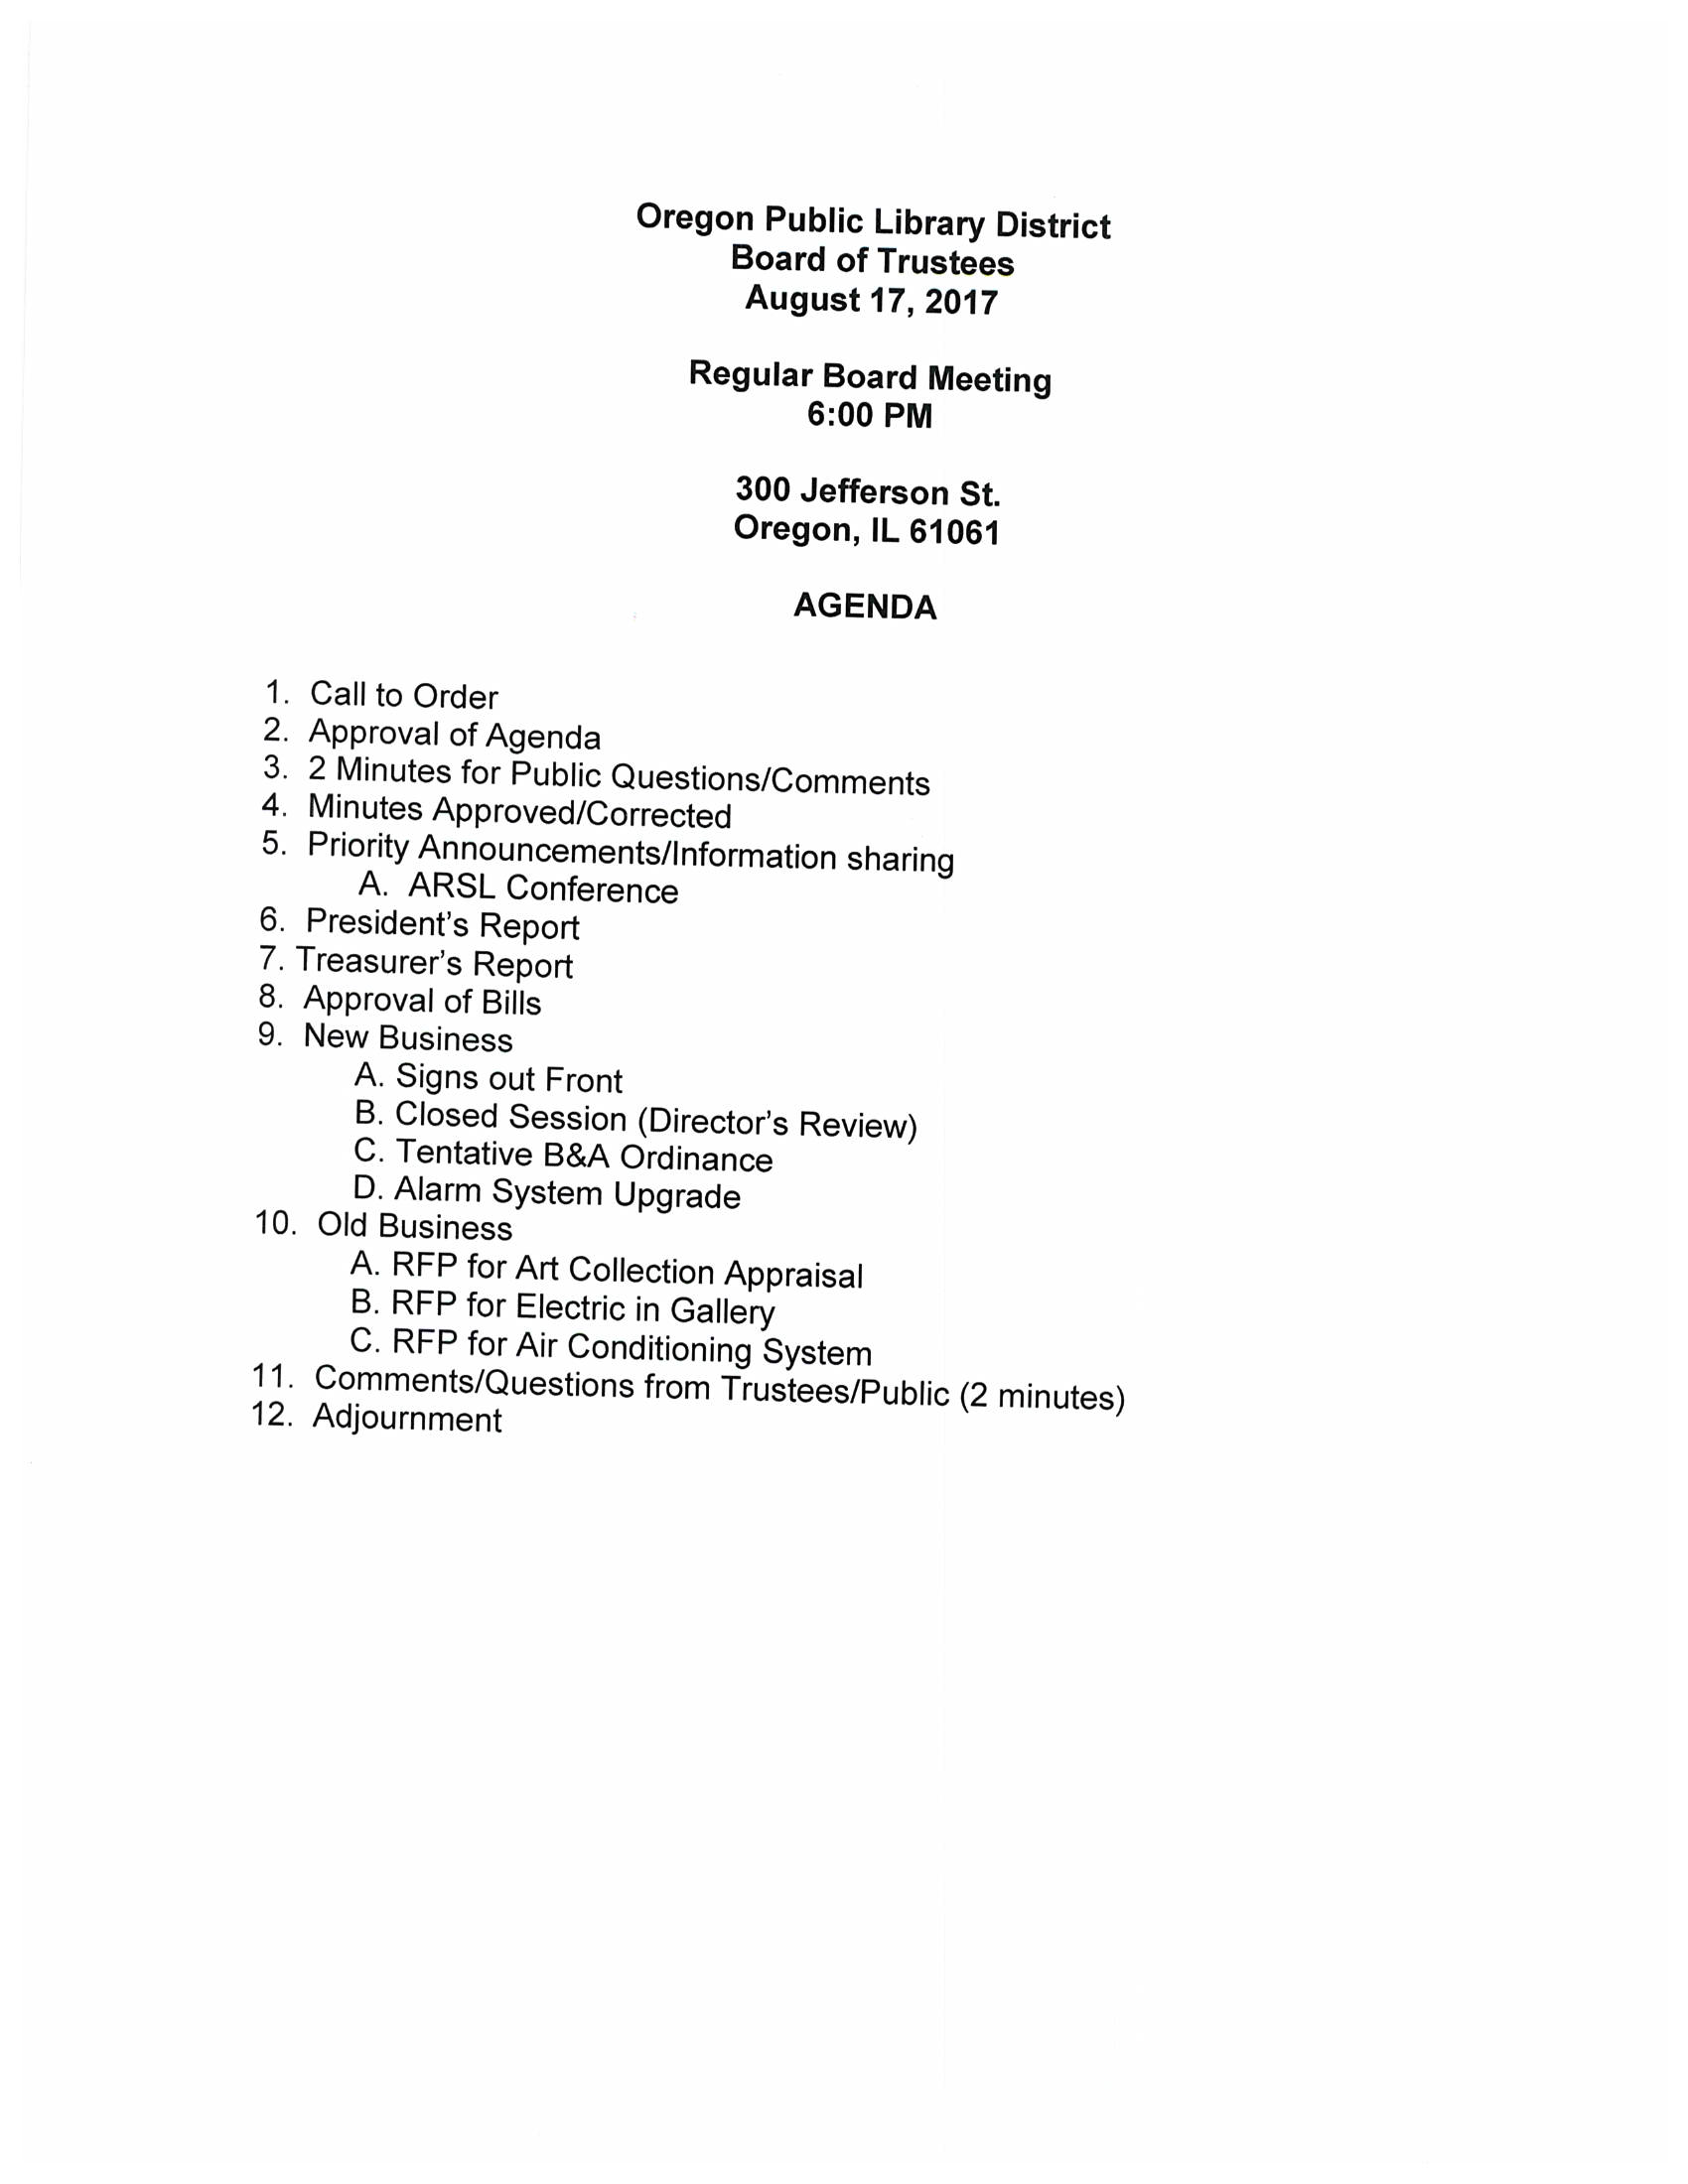 August Board Meeting Agenda – Oregon Public Library District